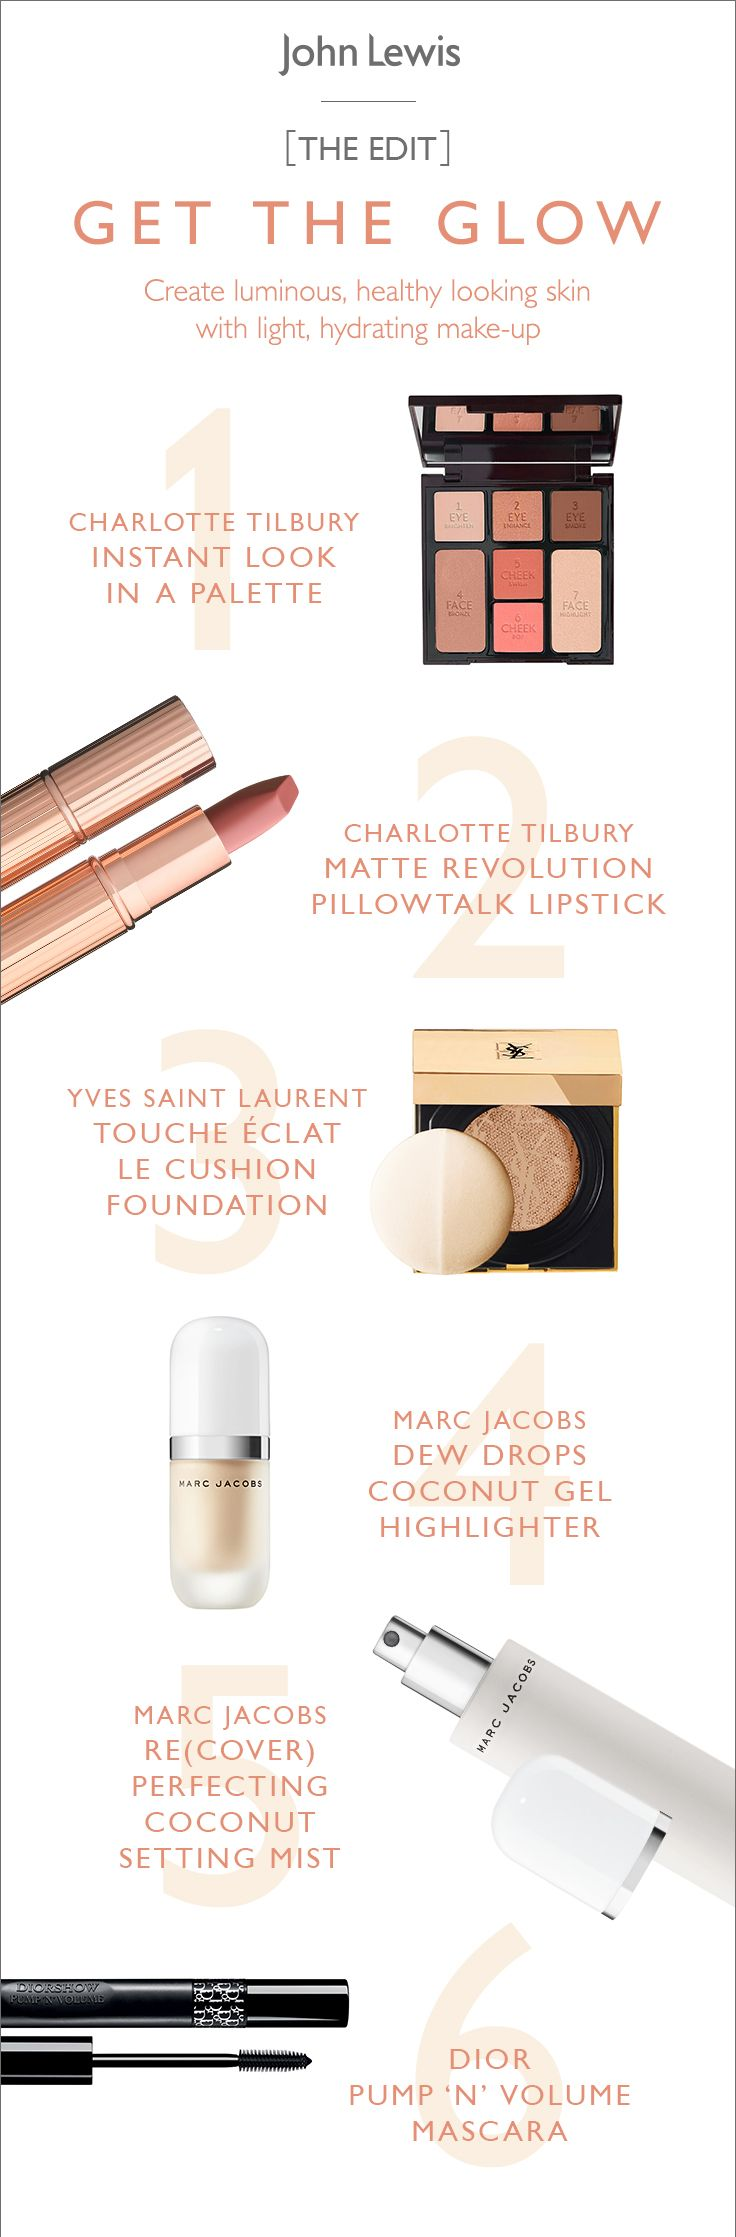 Inspired by this month's EDIT, create luminous, healthy-looking skin with light, hydrating make-up. Update your look for summer with products that give a radiant and glowing look. Discover more products in store or online, including Charlotte Tilbury, Marc Jacobs, YSL and Dior.